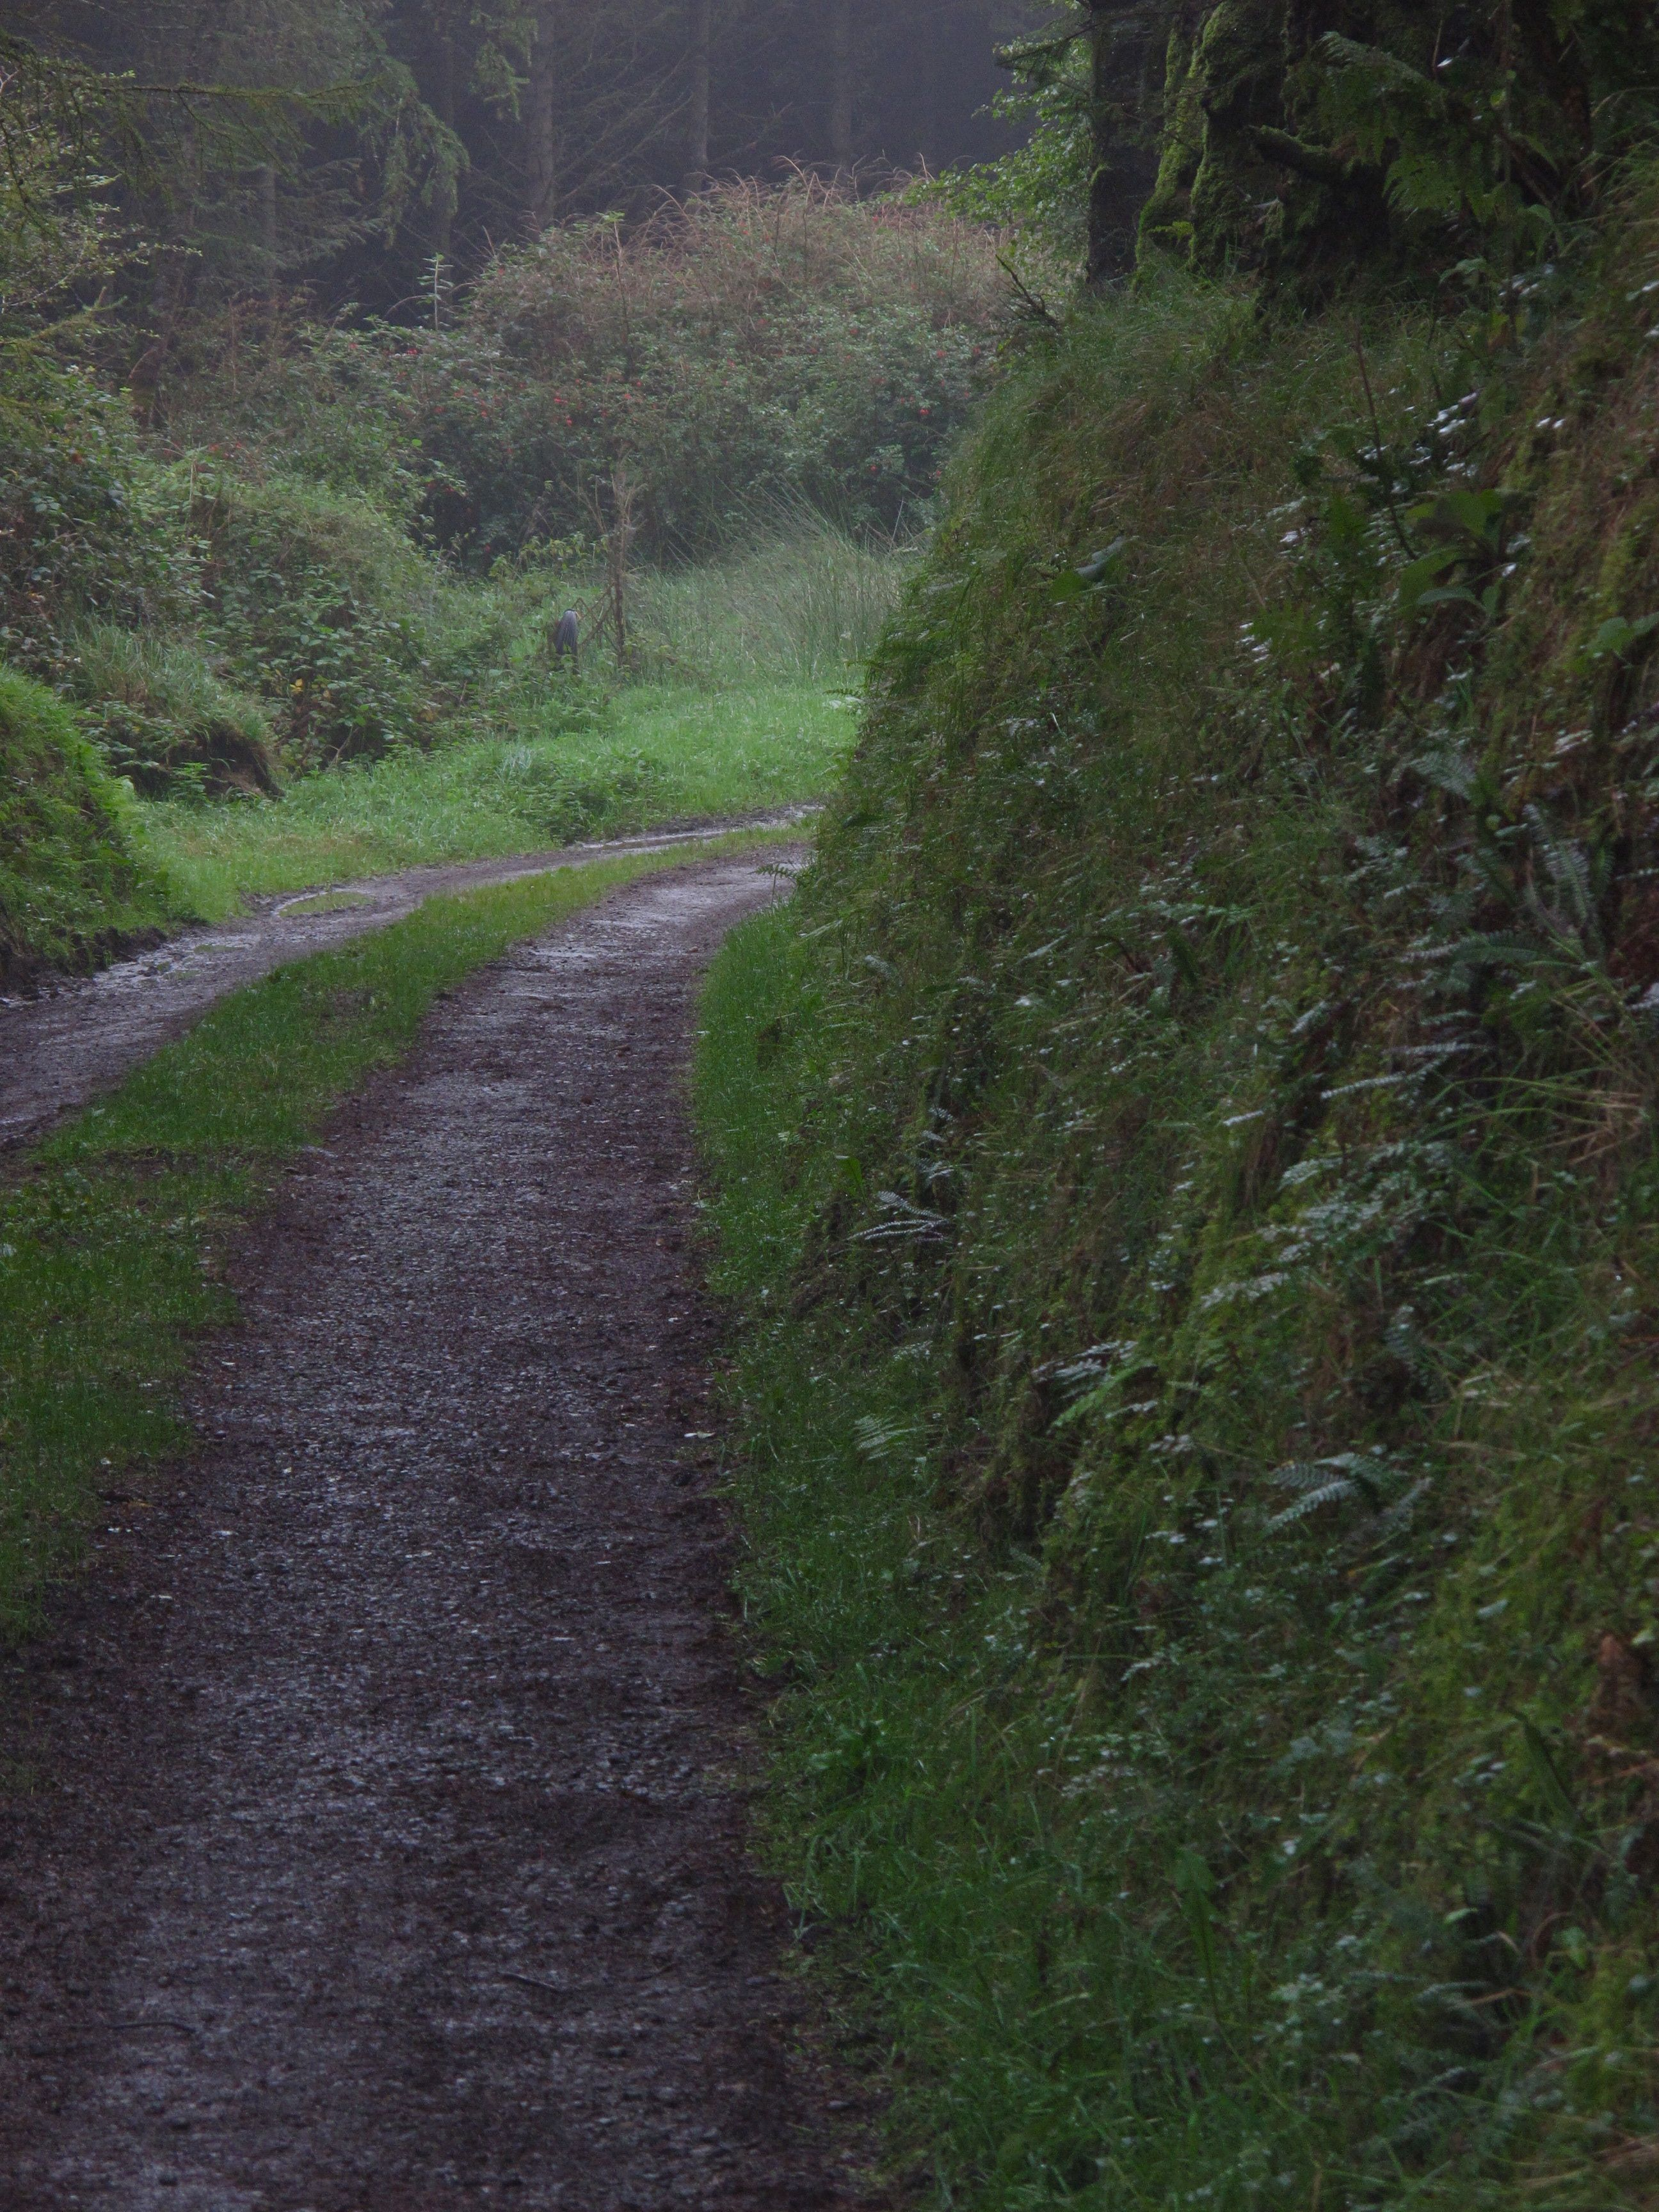 Road in front of my grandmother's house in Ireland